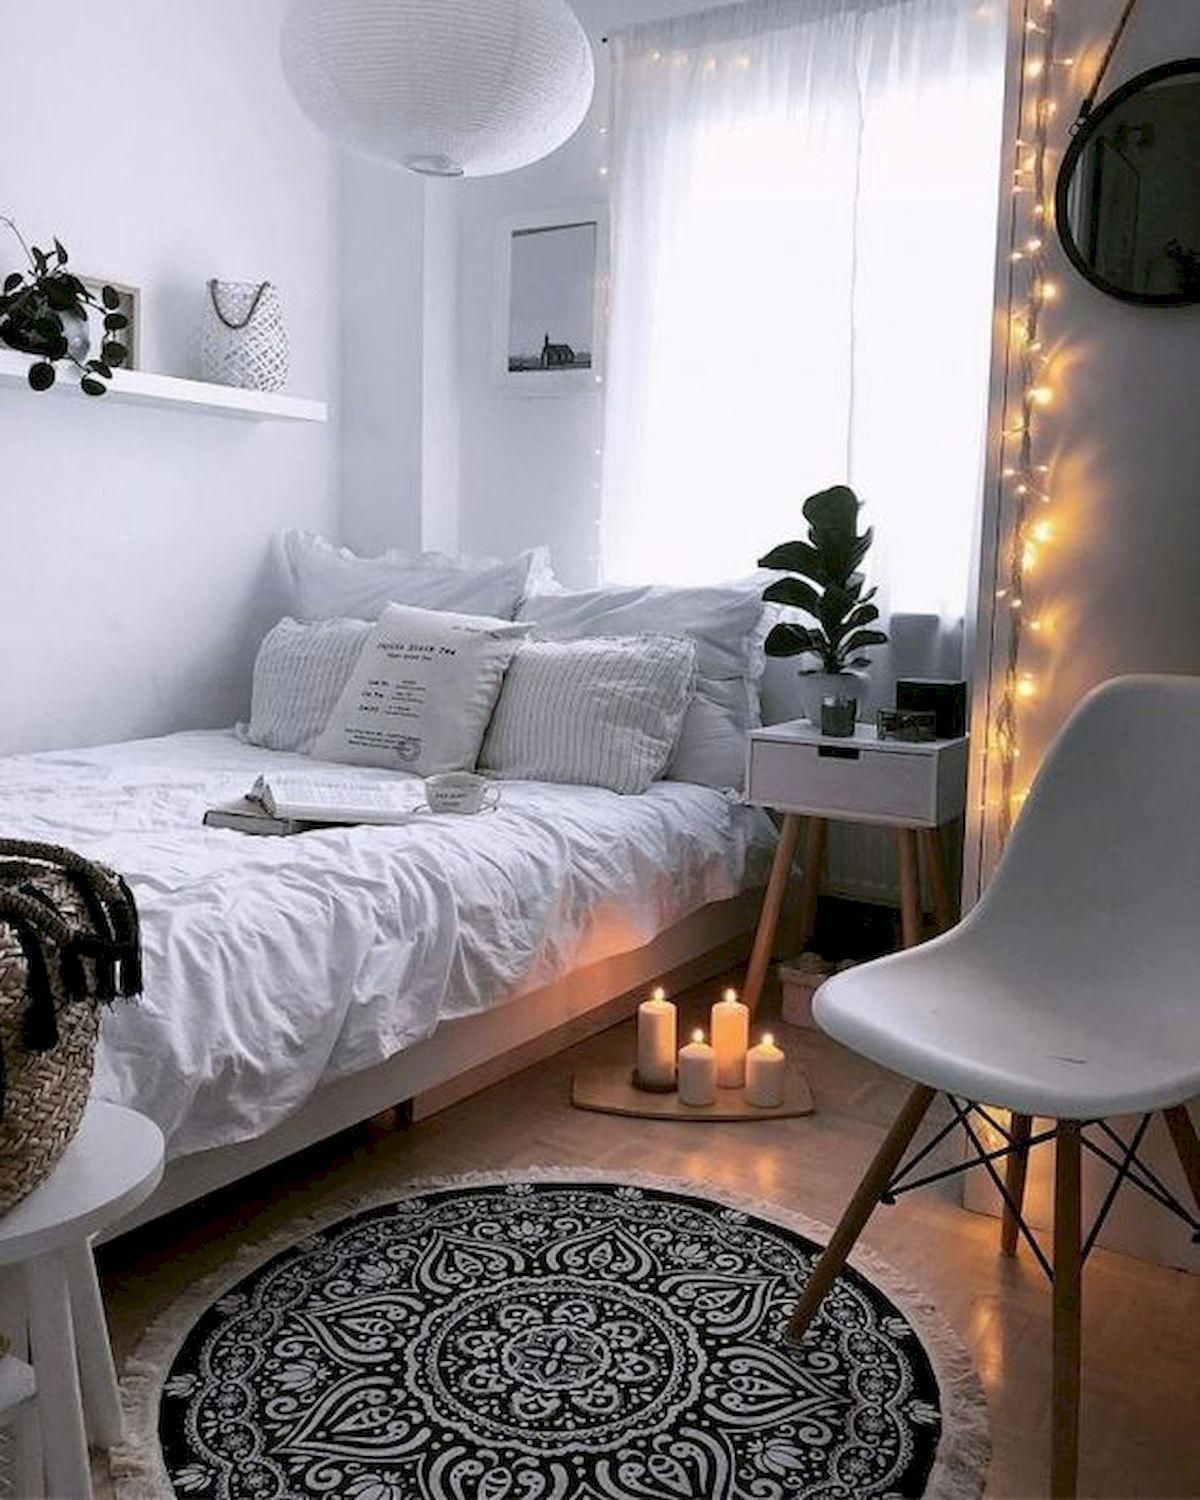 Bedding Sets California King Size Bedlinenstoresnearme Id 6220371616 Small Apartment Bedrooms Bedroom Design Trends Apartment Bedroom Design